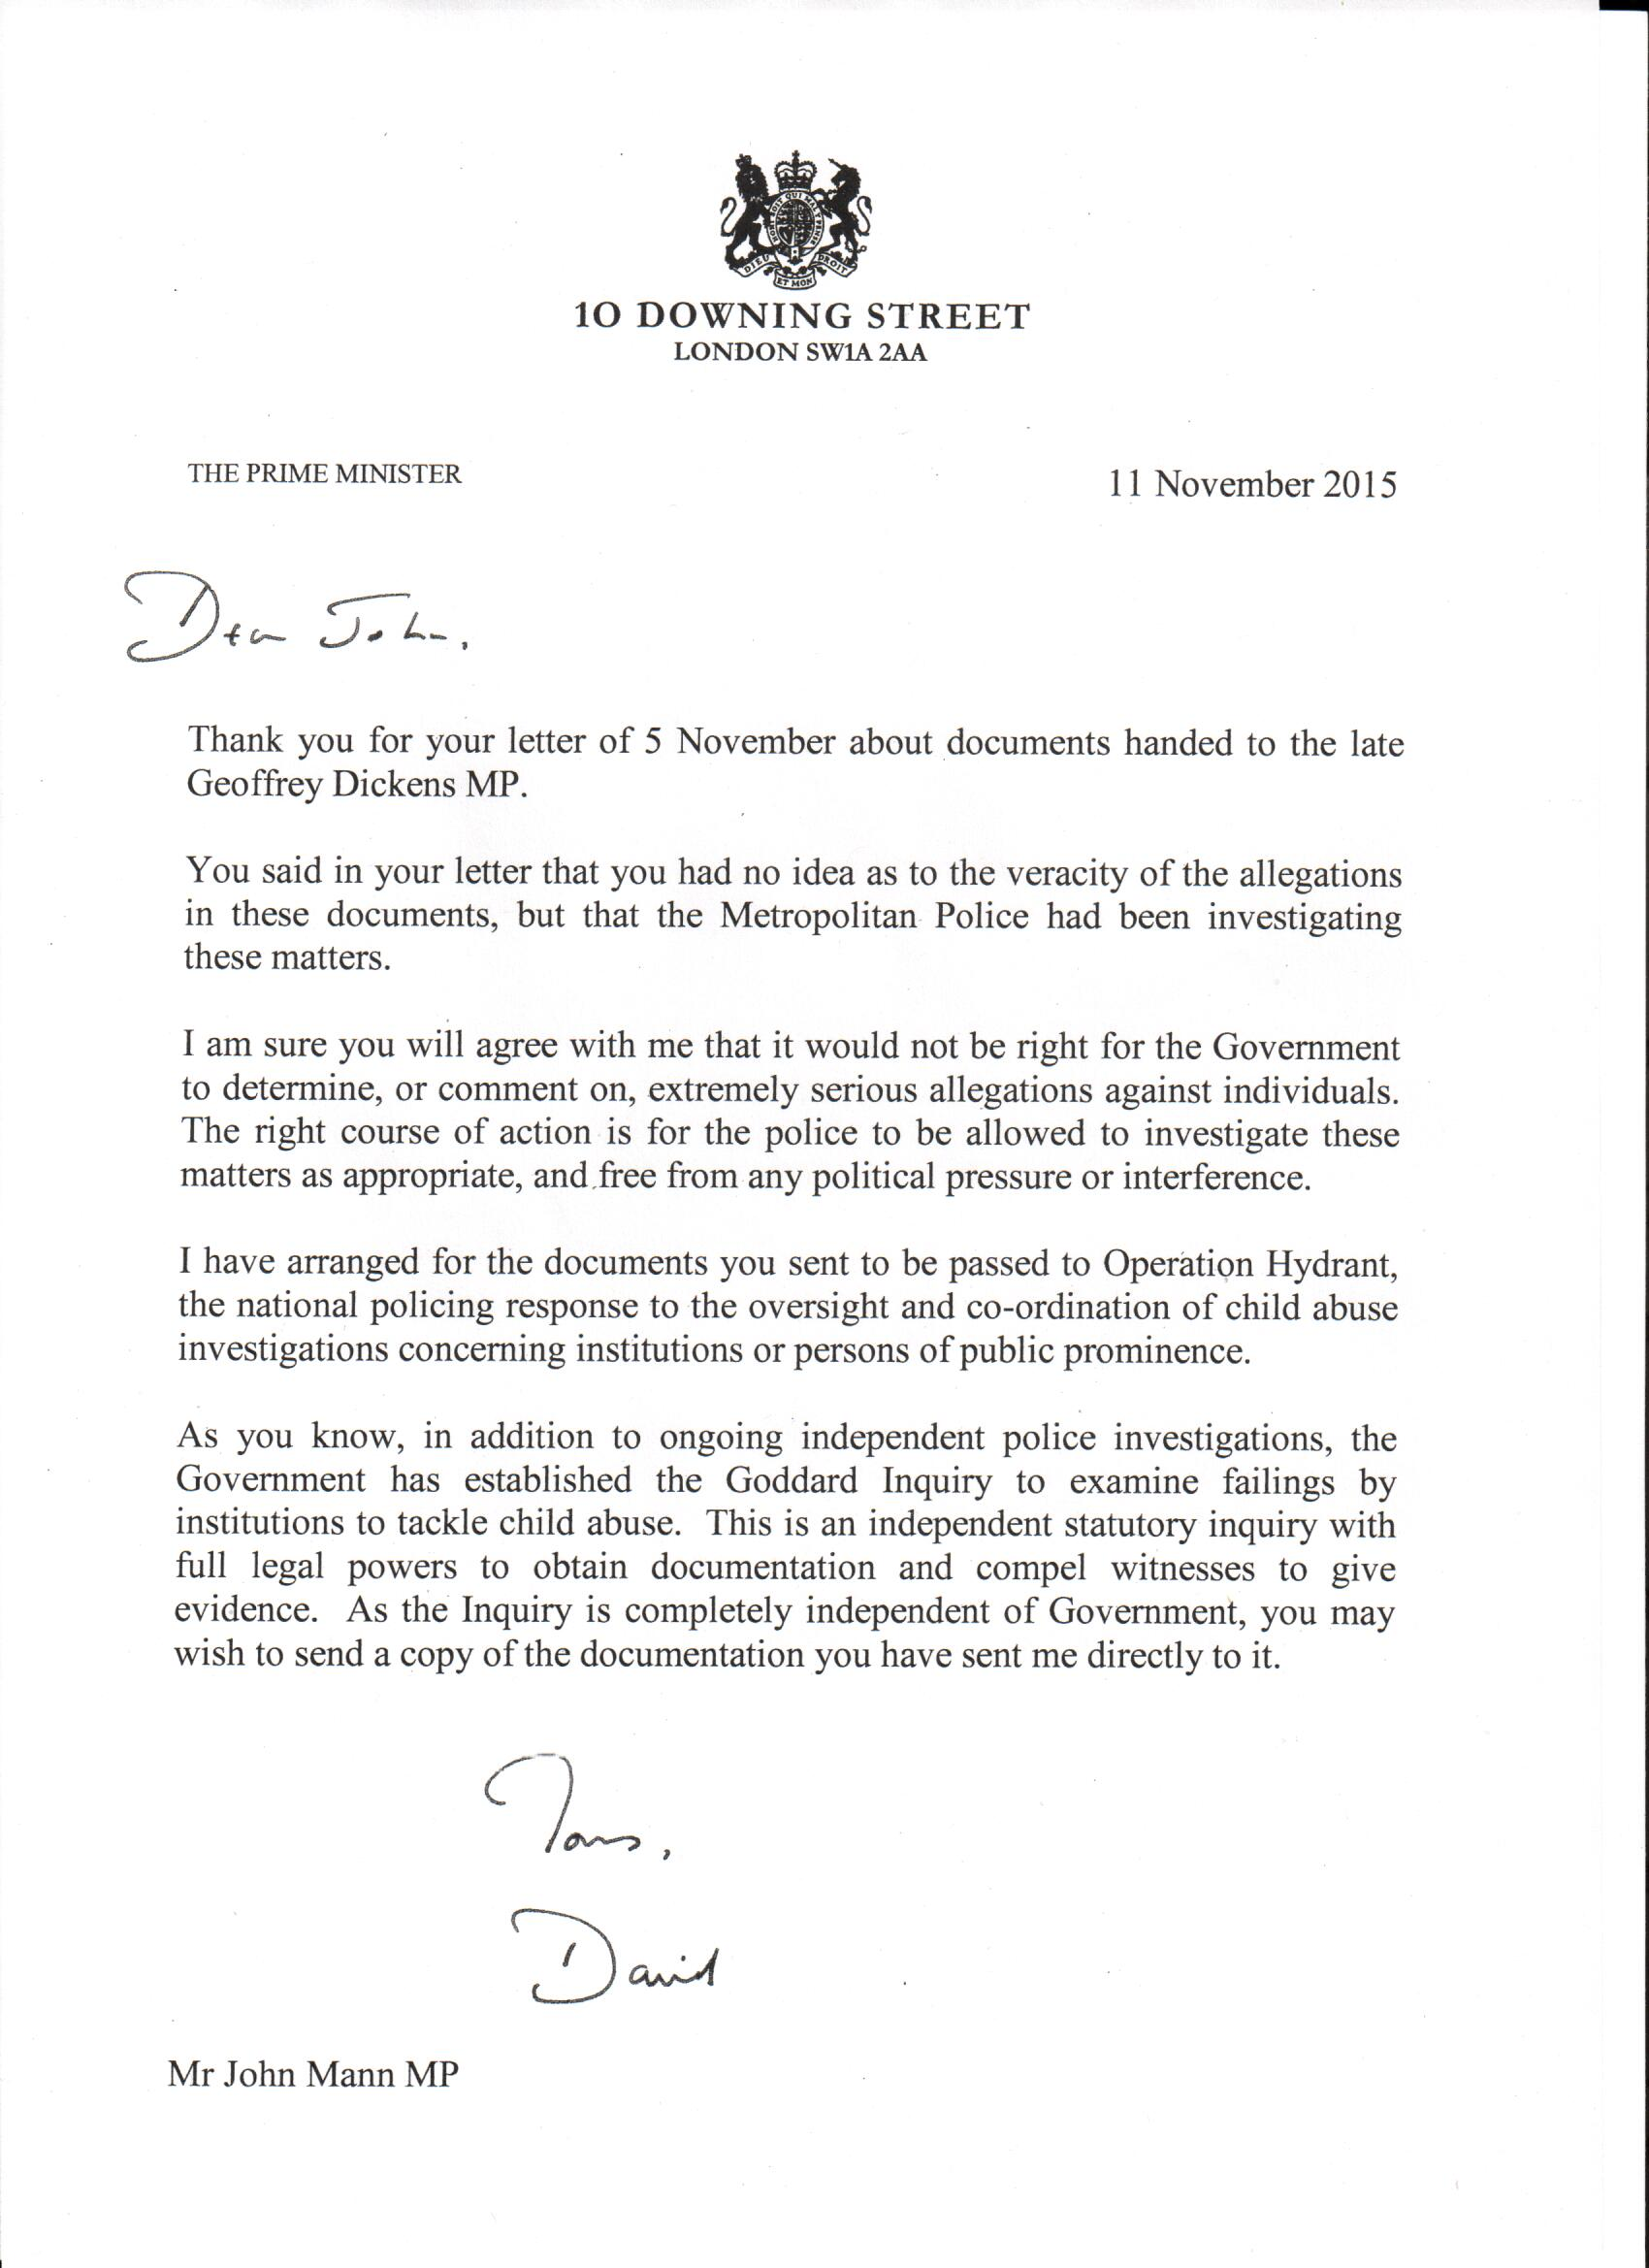 Letter and response from the Prime Minister regarding the Dickens